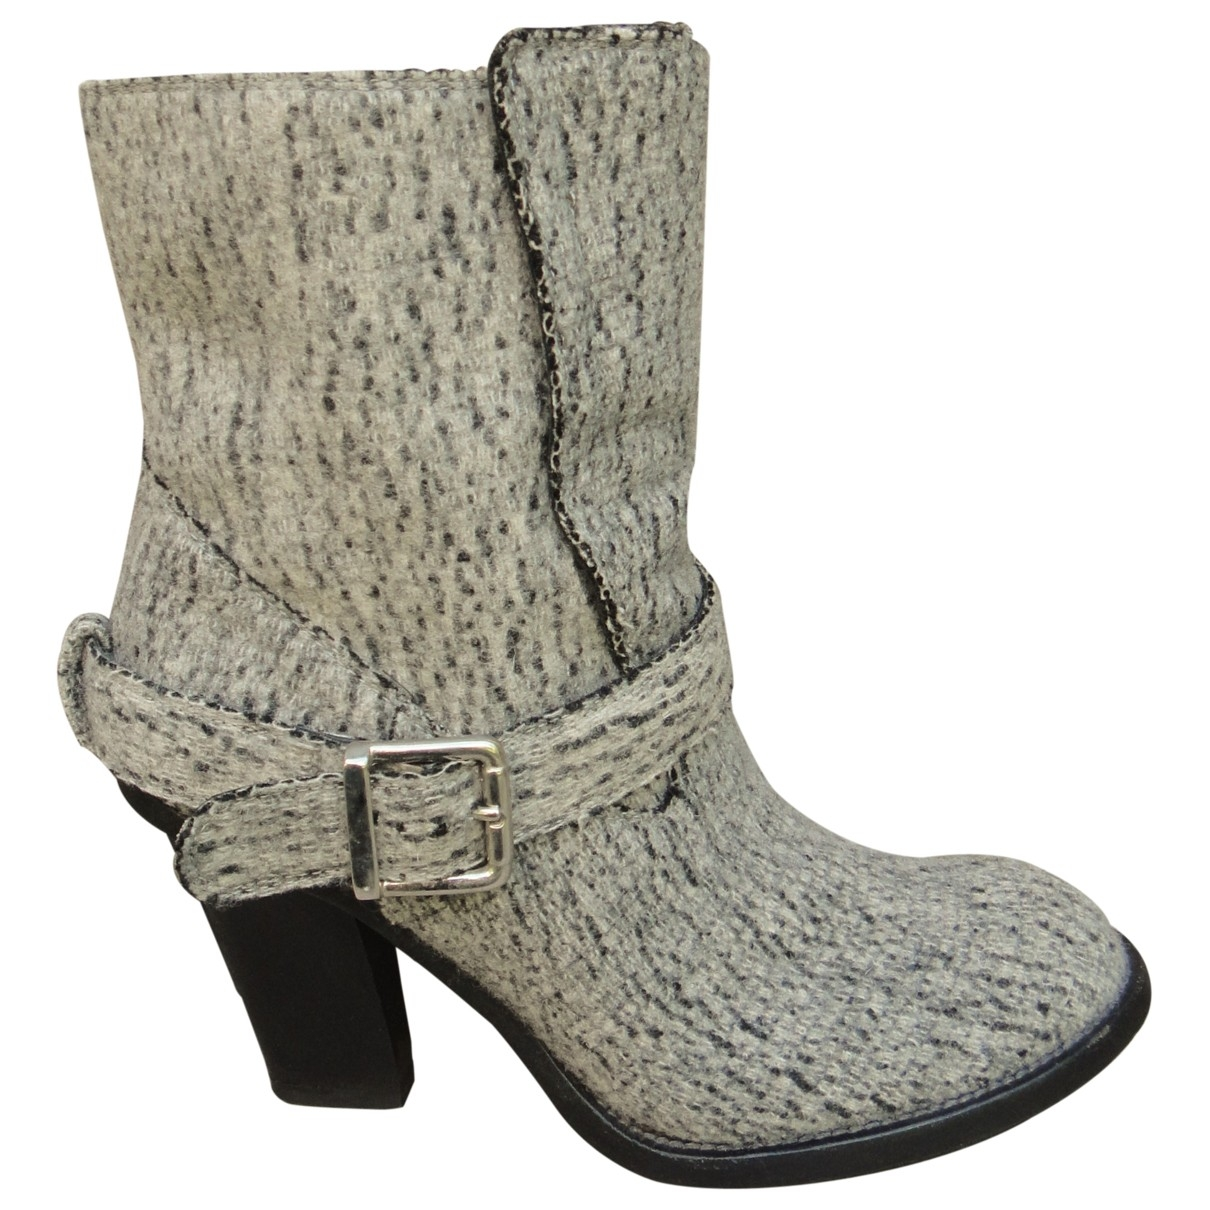 Chloé \N Grey Cloth Ankle boots for Women 39 EU